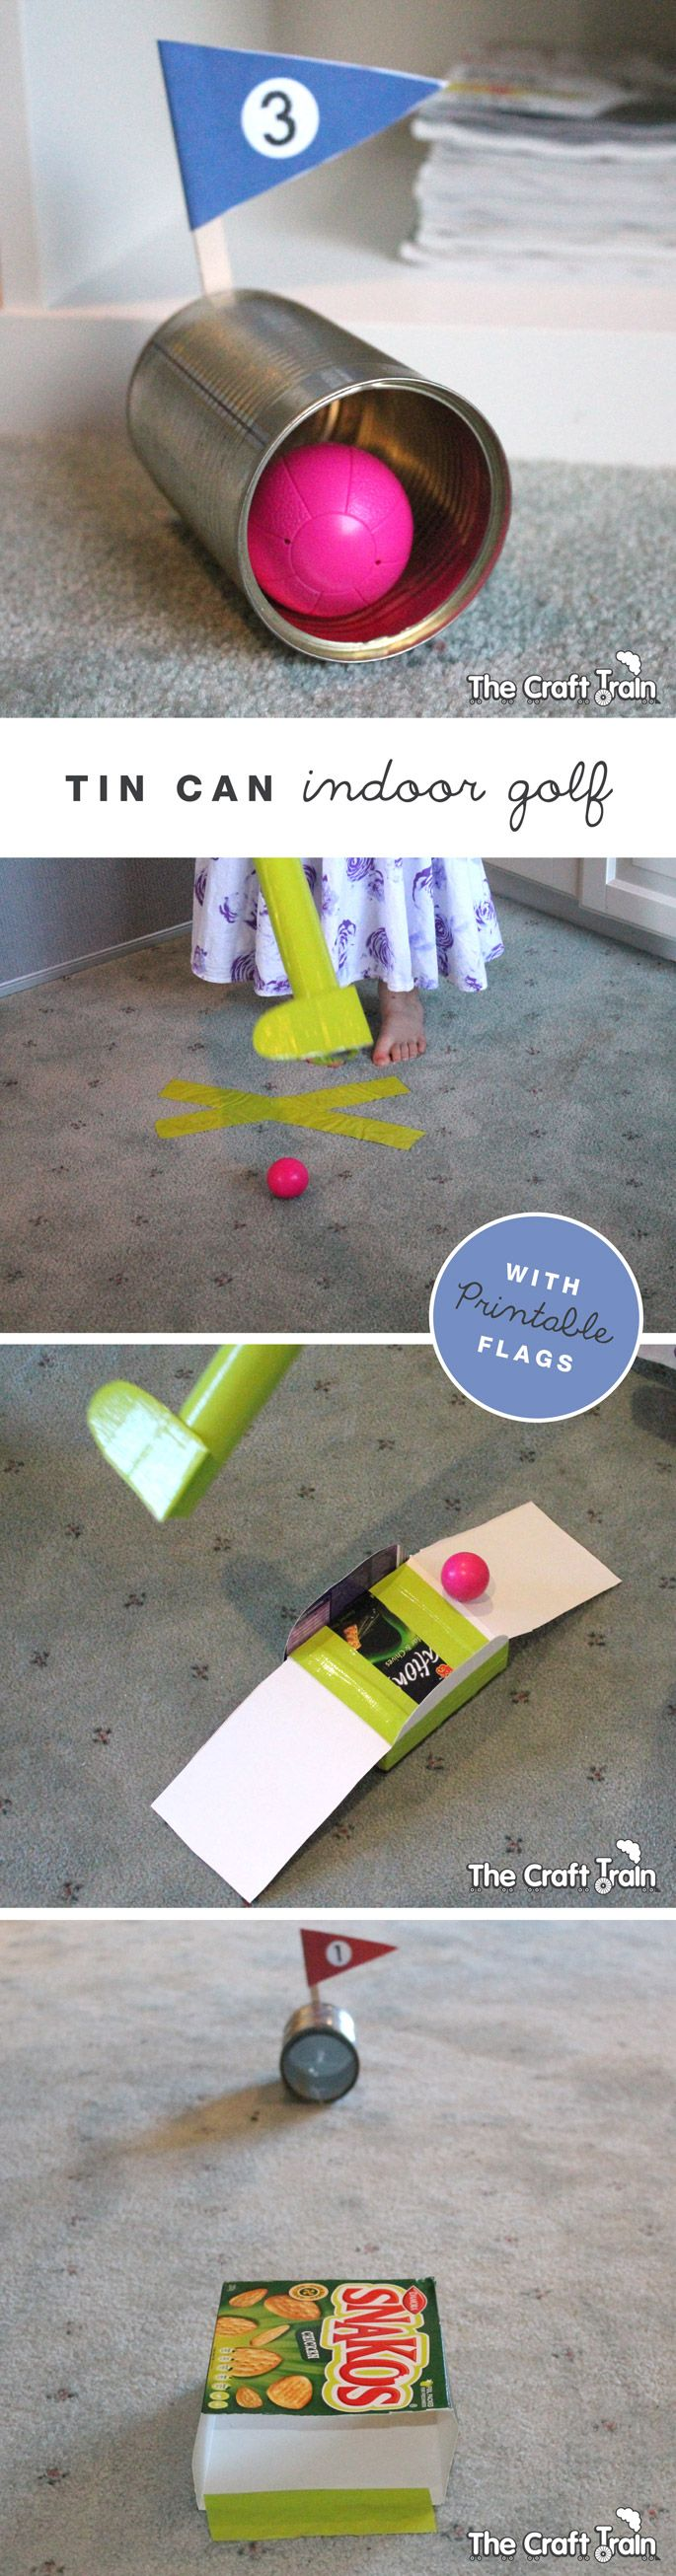 Indoor DIY golf course made from recyclables